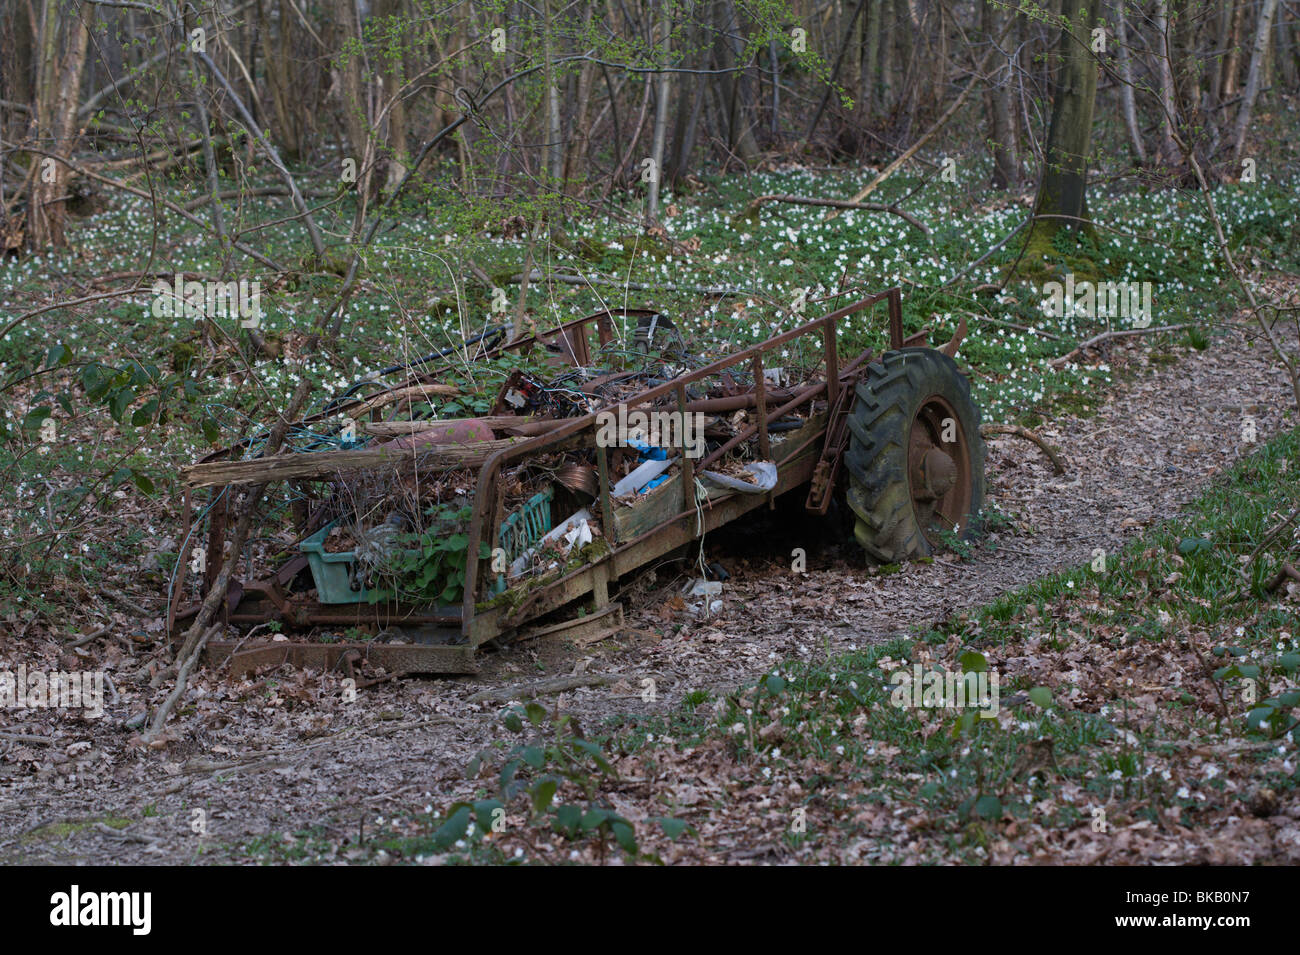 abandoned dung spreader - Stock Image